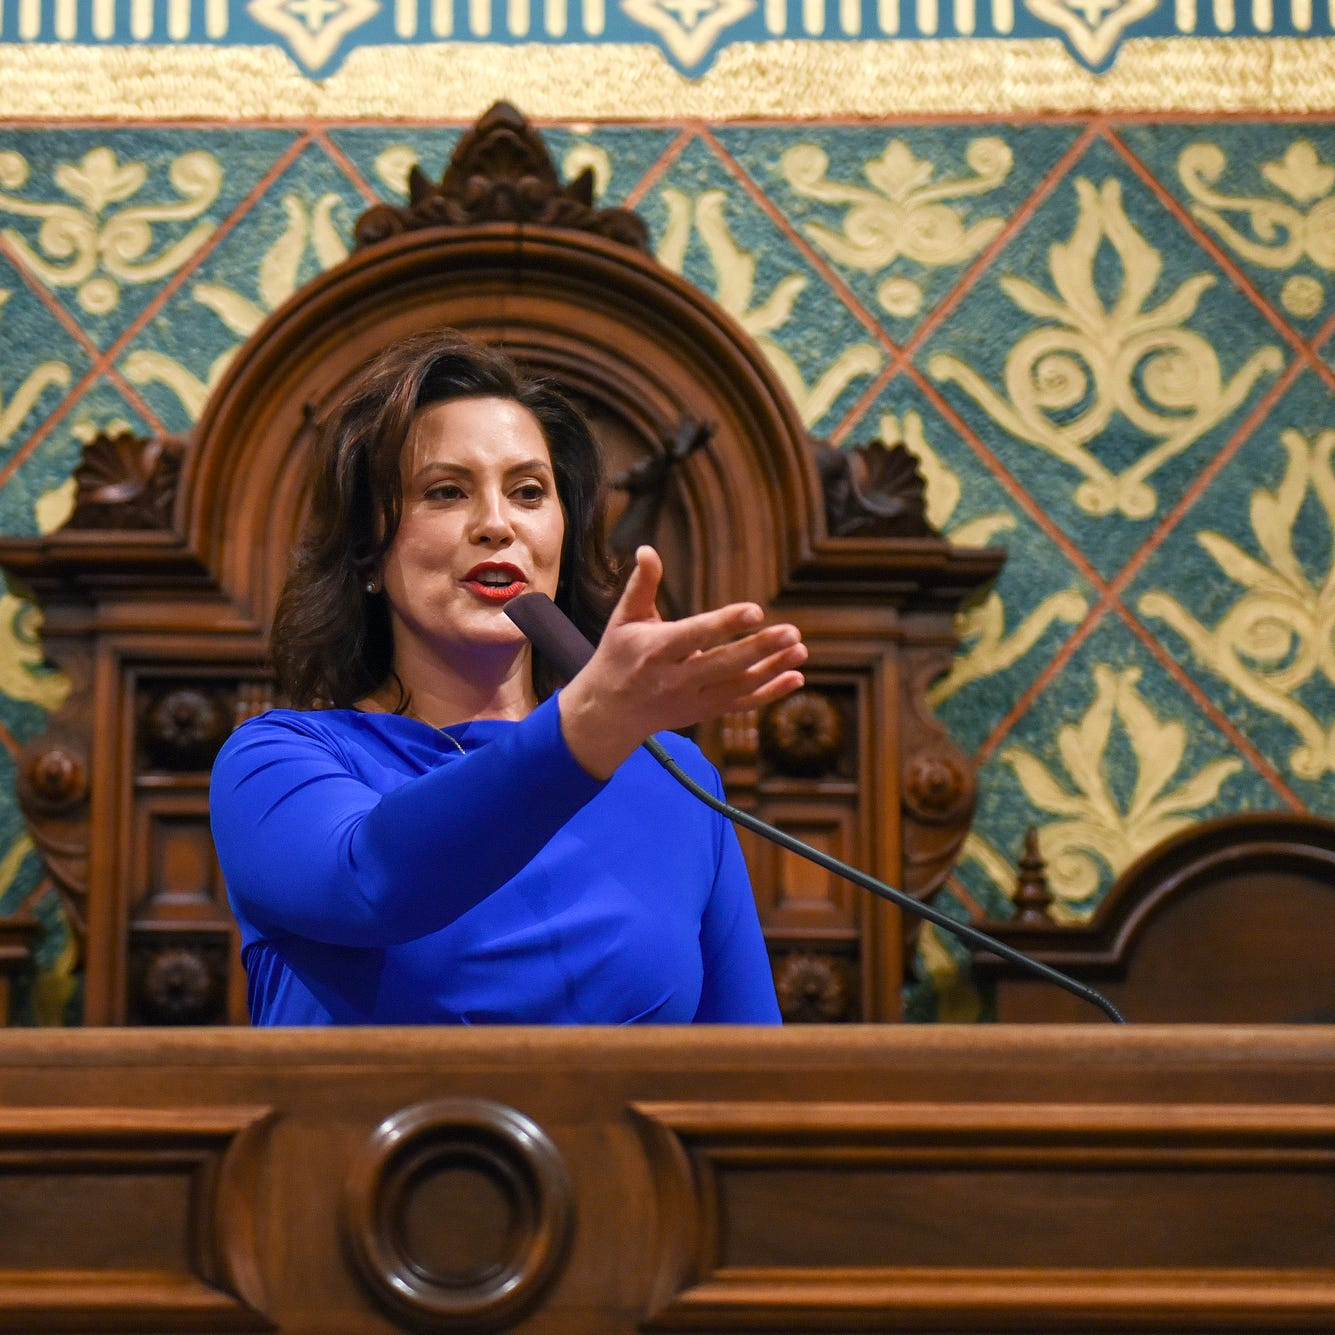 Reactions: Social media responds to Gov. Whitmer's proposed gas tax hike